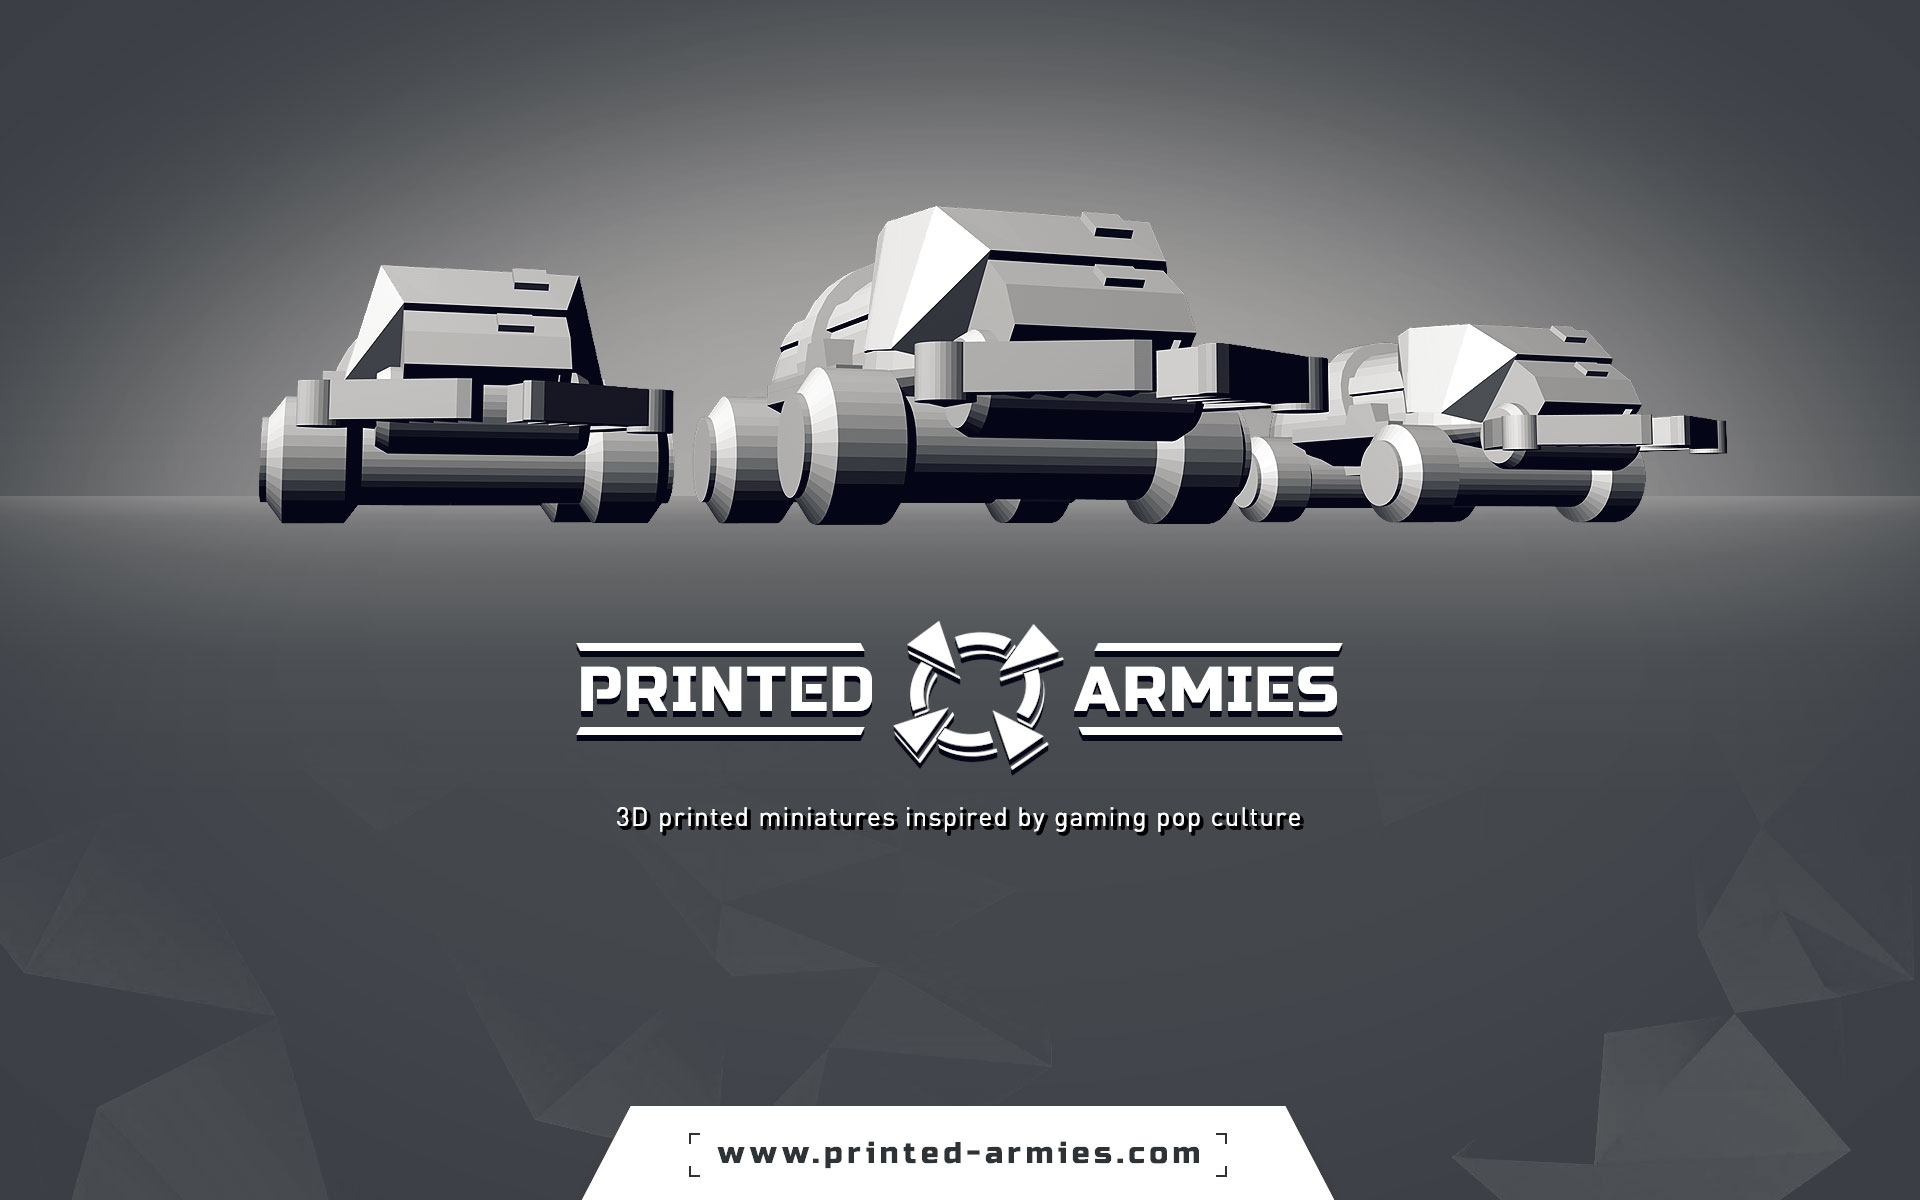 printed-armies-wallpaper06